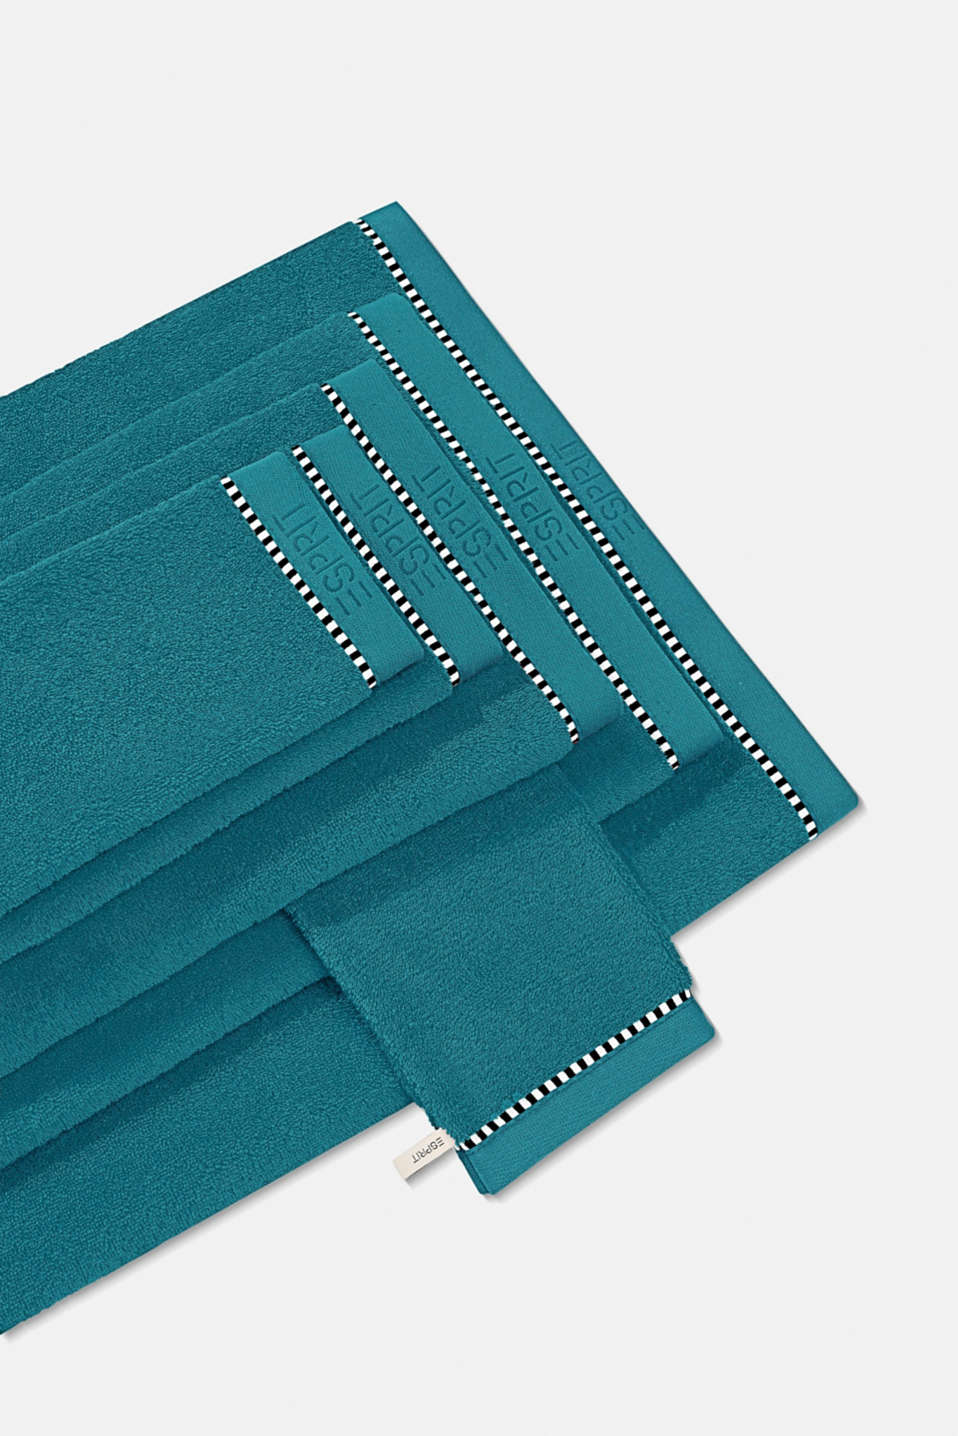 Esprit - With TENCEL™: terry cloth towel collection